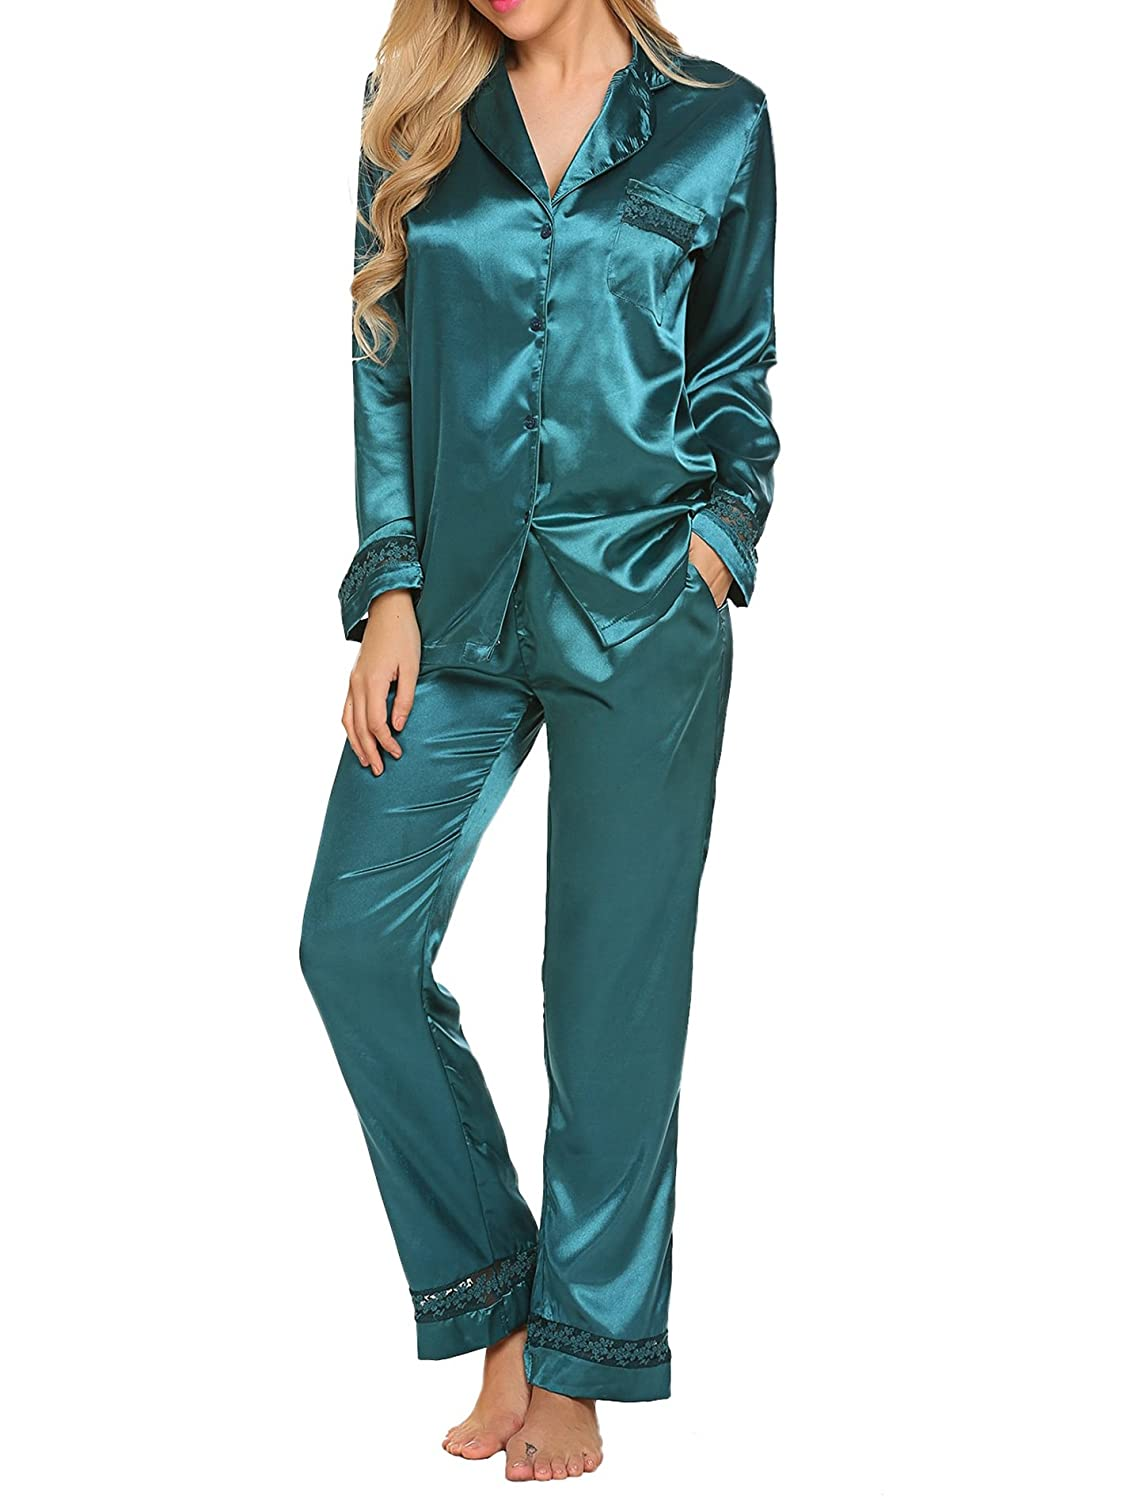 6c9894e2a13d HOTOUCH Womens Silk Satin Pajamas Set Sleepwear Loungewear Dark Green XXL   Amazon.co.uk  Clothing